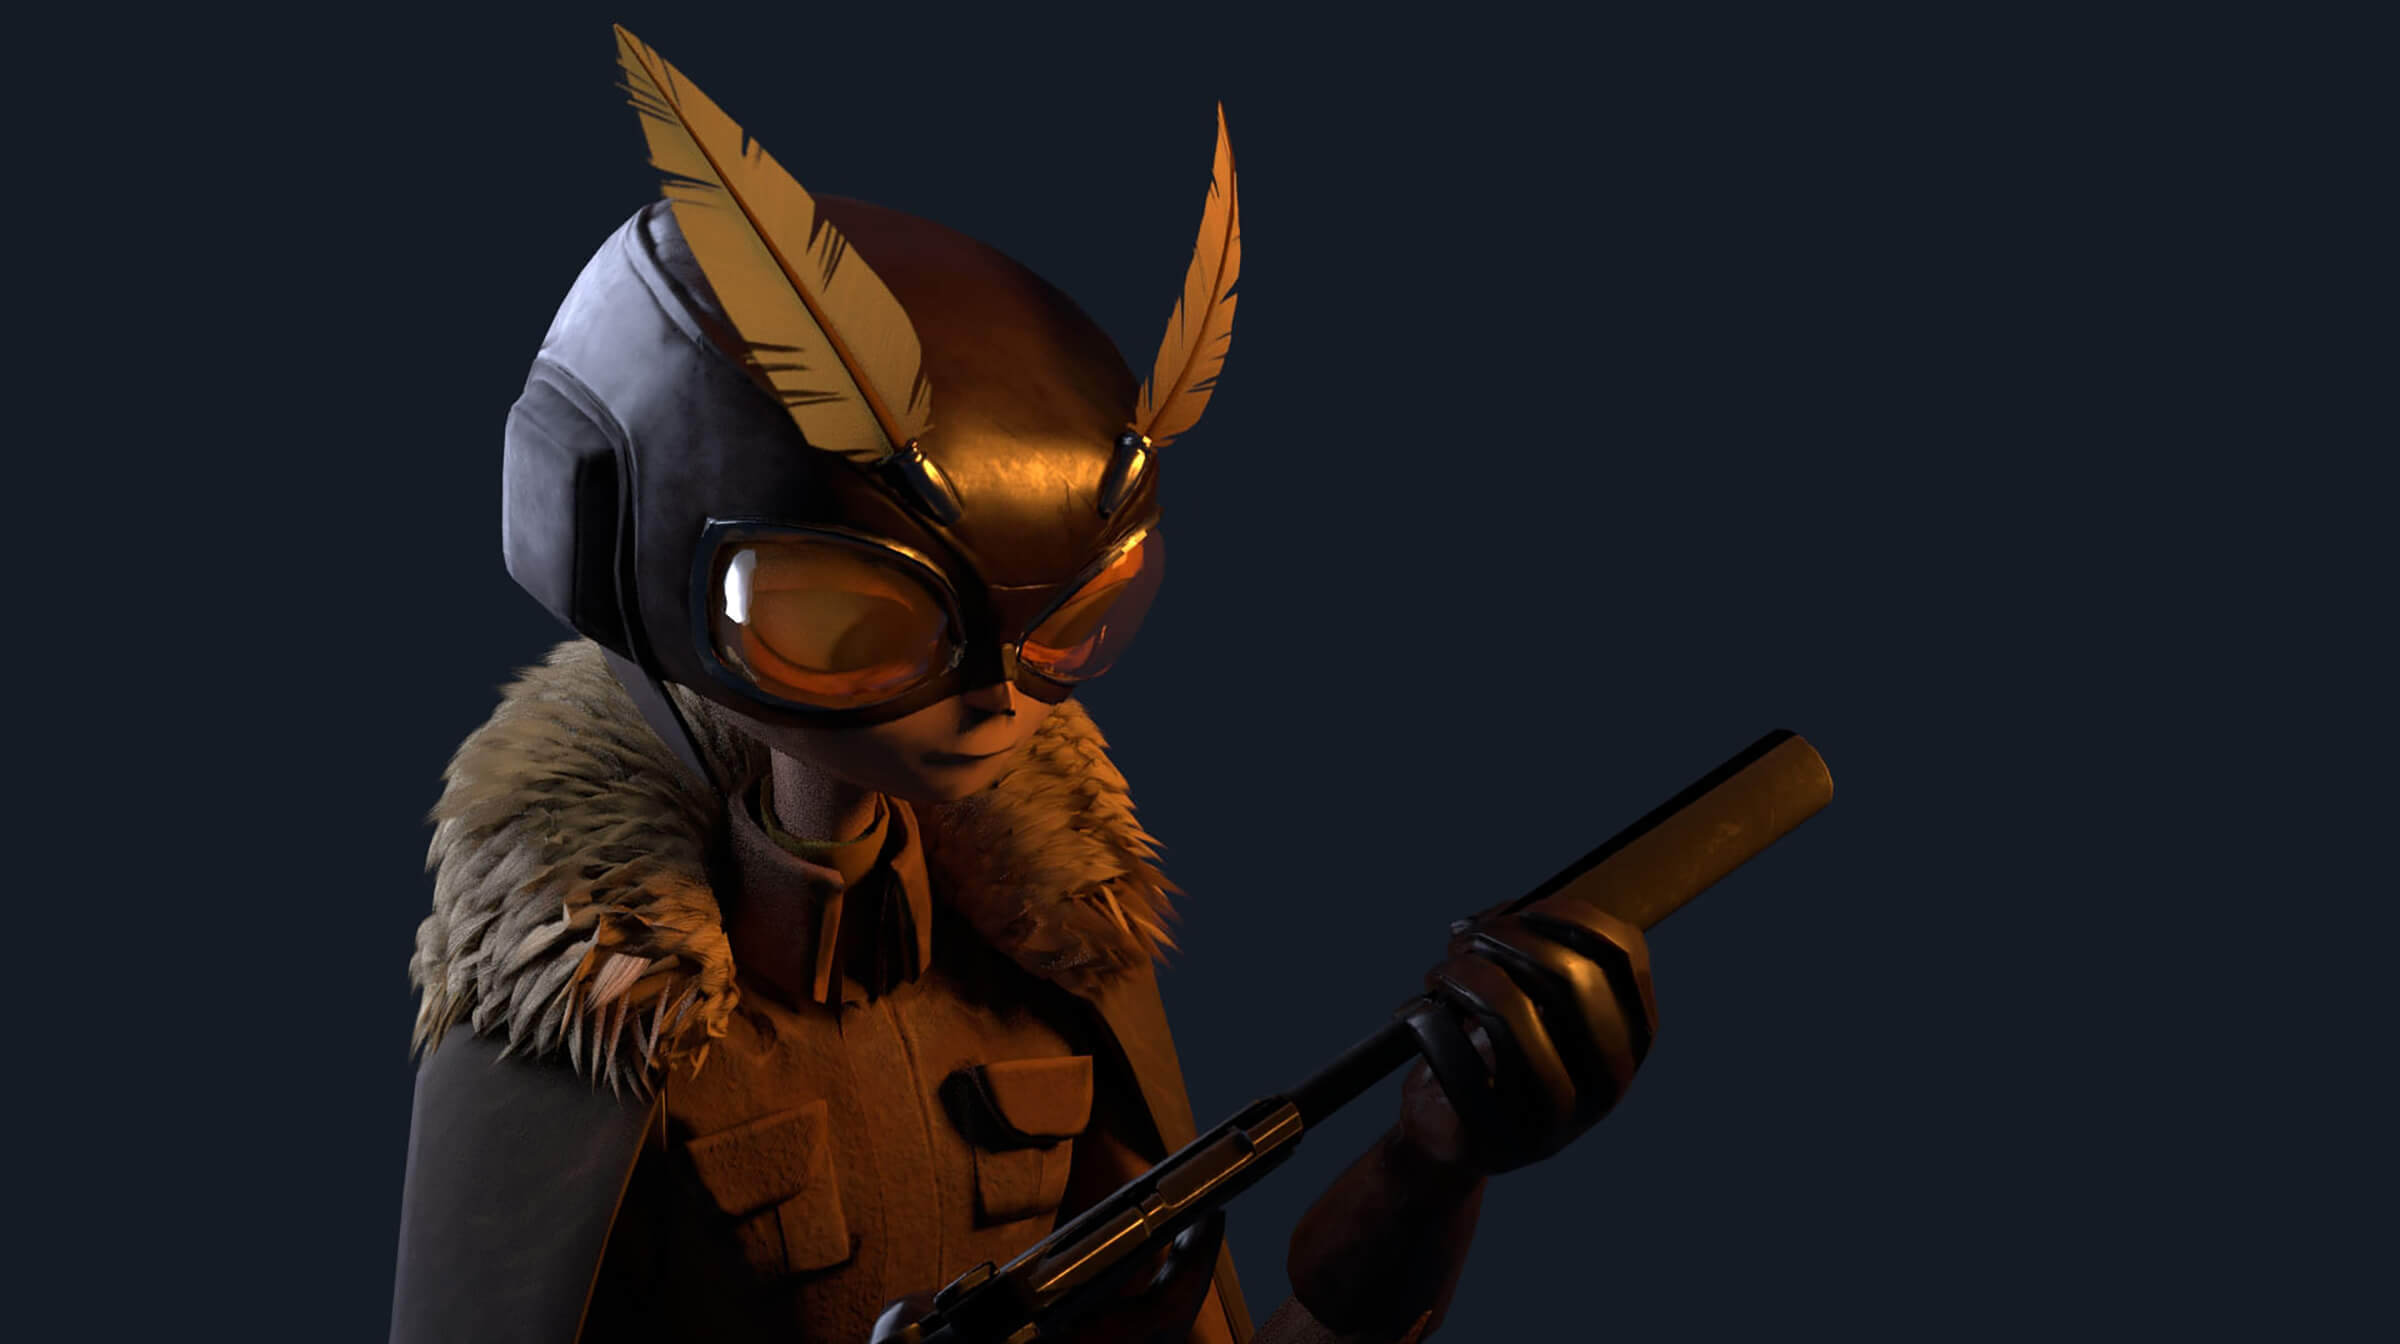 Close-up of a character in goggles with two feathers carrying a gun